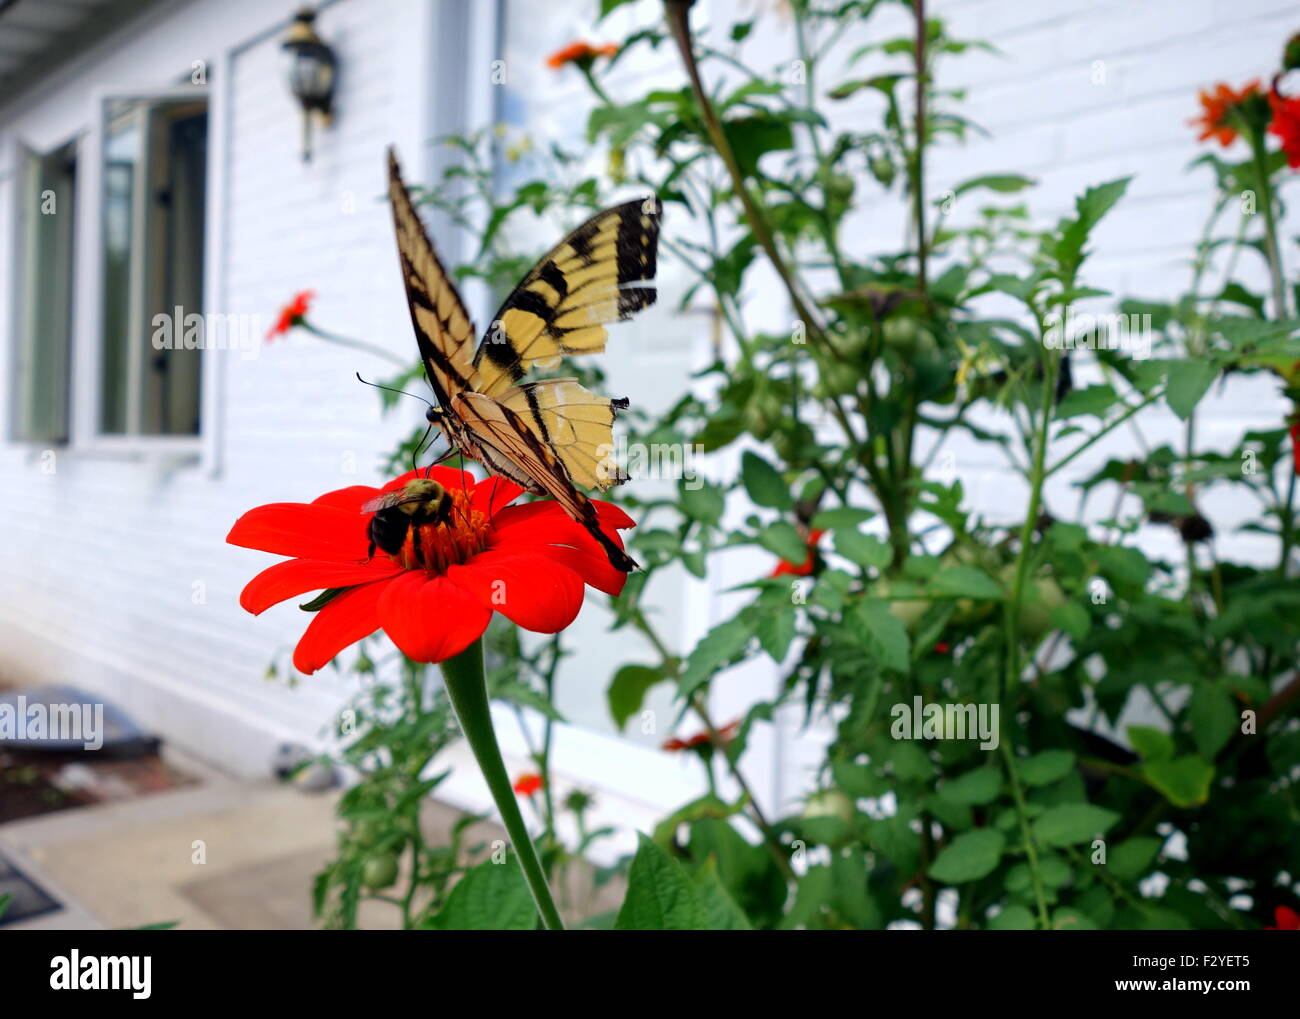 Butterfly watching bumblebee pollinate Mexican sunflower - Stock Image